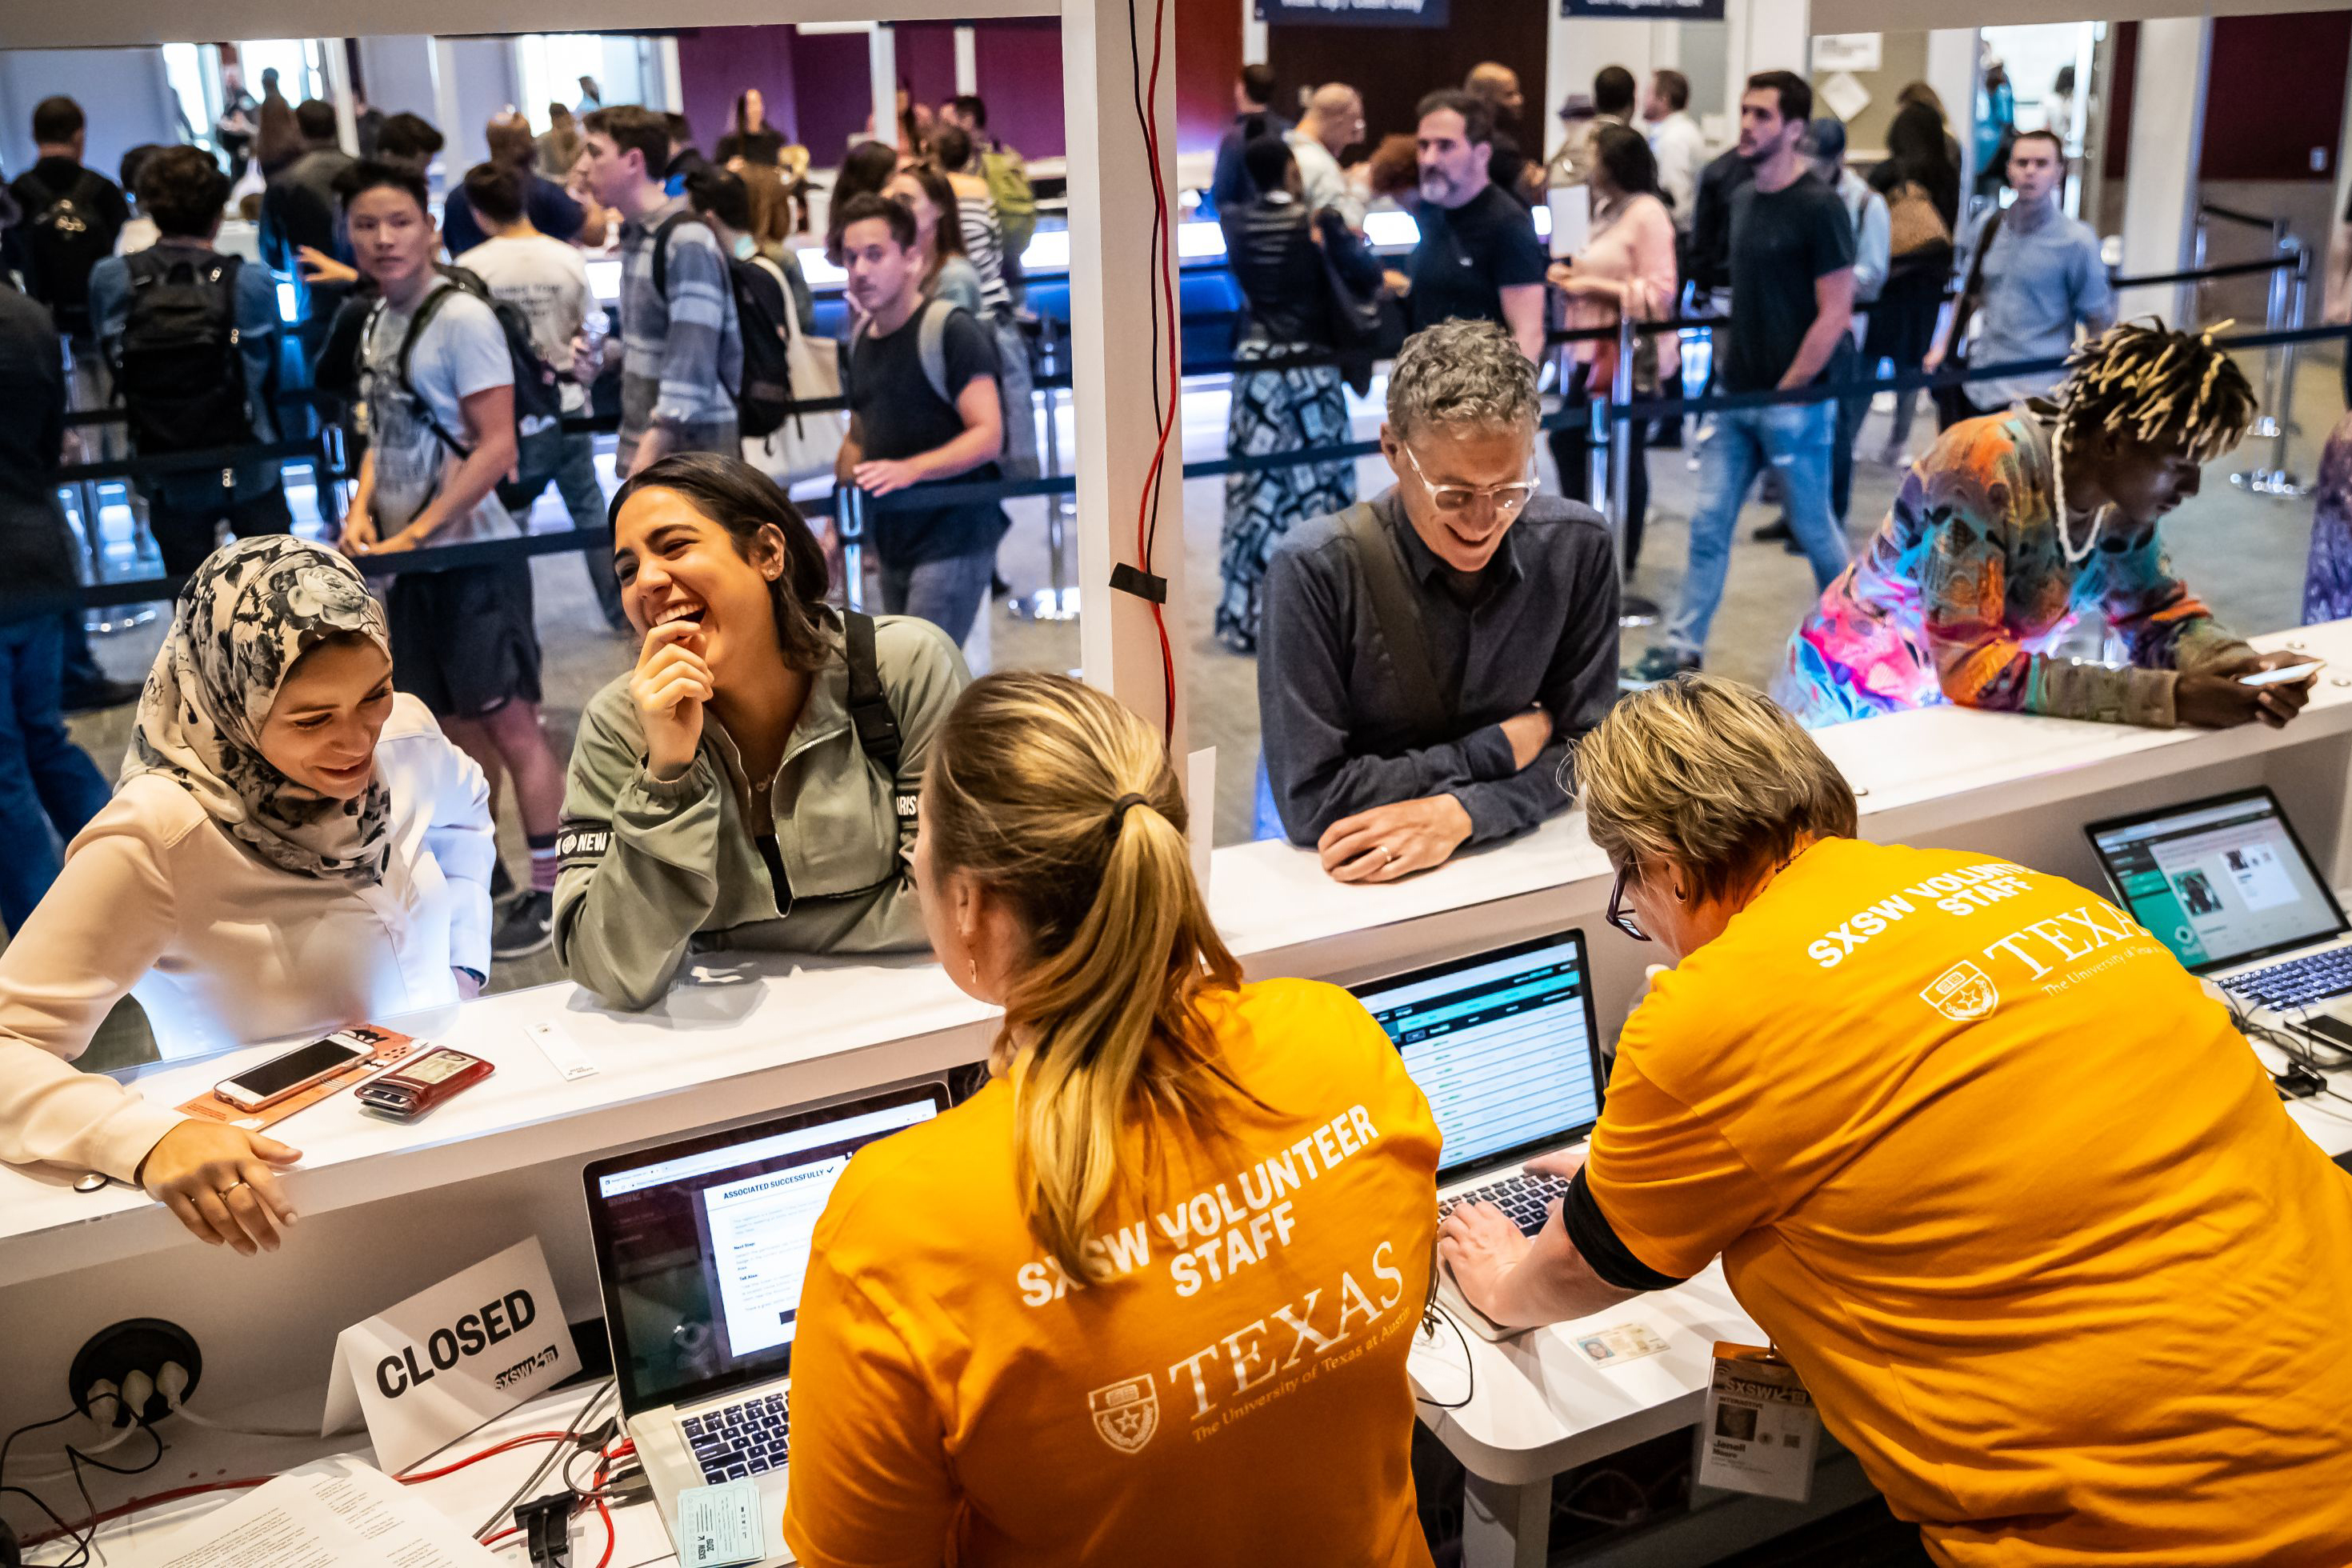 With refunds in doubt, leaked SXSW pitch deck shows cost of coronavirus cancelations